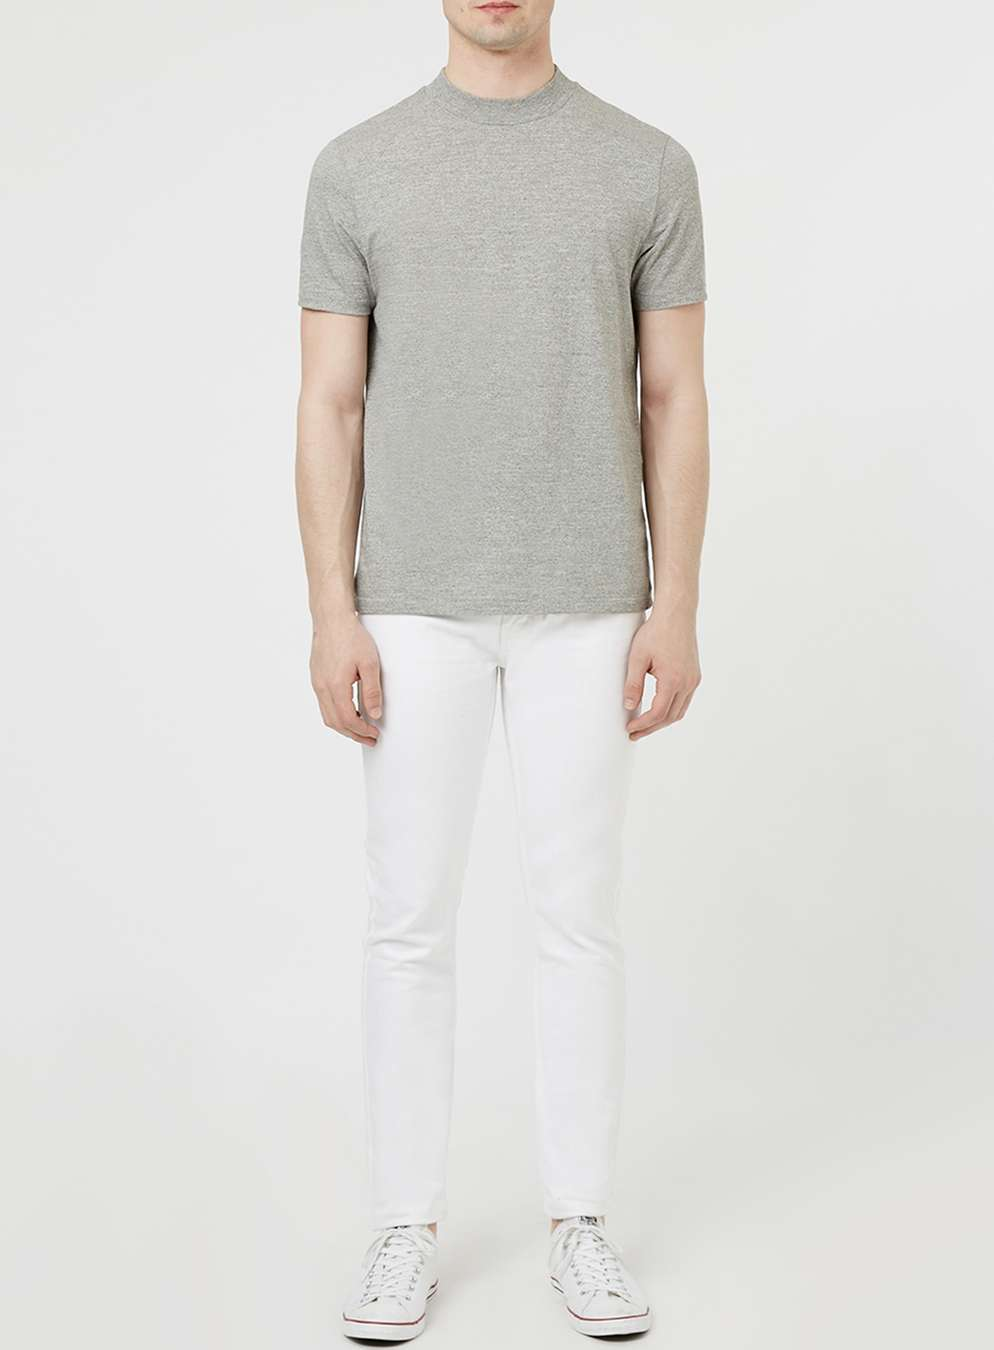 cropped-white-jeans-topman